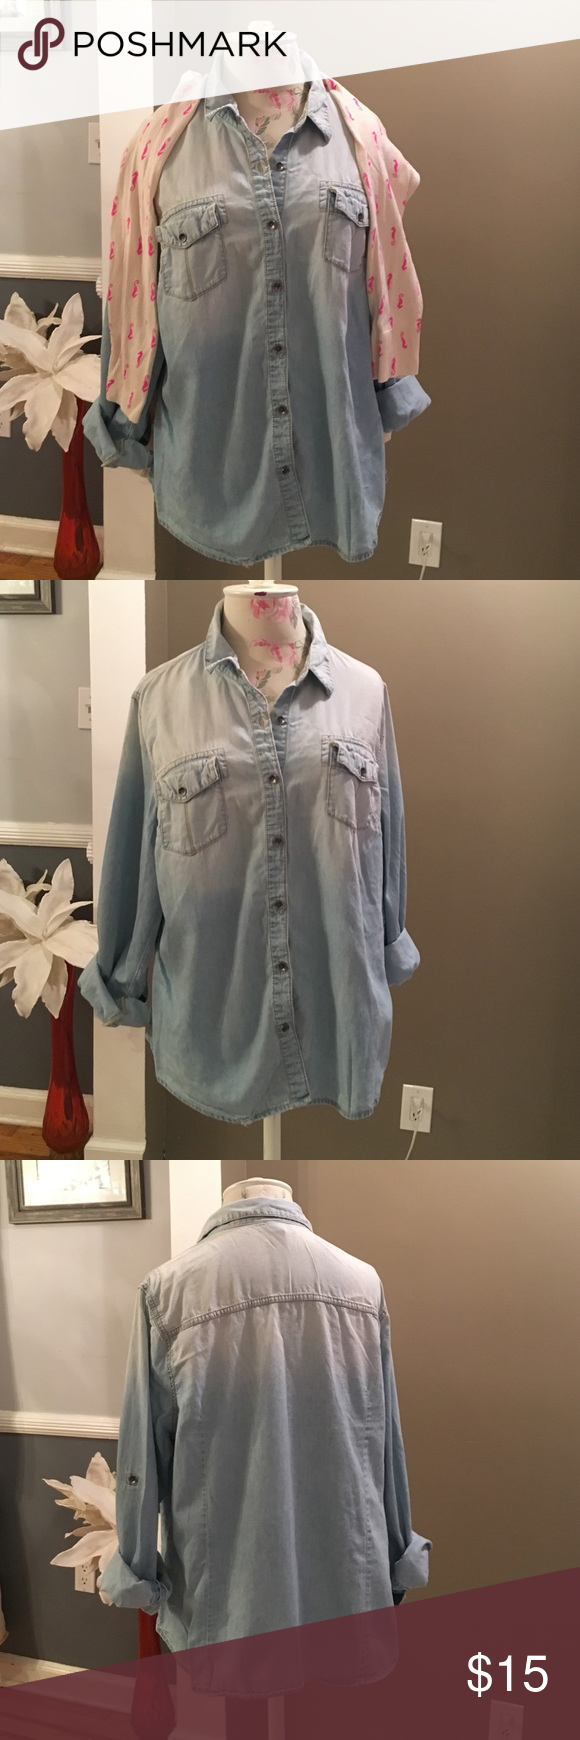 """Bundle of two button down shirts Denim top - Mossimo light weight denim shirt. 100% cotton. Covered pockets on the front. Silver button closure. Button and tab on each arm for the option to roll up your sleeves. Size says XXL but it fits like a large.  Excellent condition. 23"""" across the front.  Plaid top- Gap Blue red and white plaid; 99% cotton 1% spandex; 23 inches from armpit to armpit. GAP Tops Button Down Shirts"""